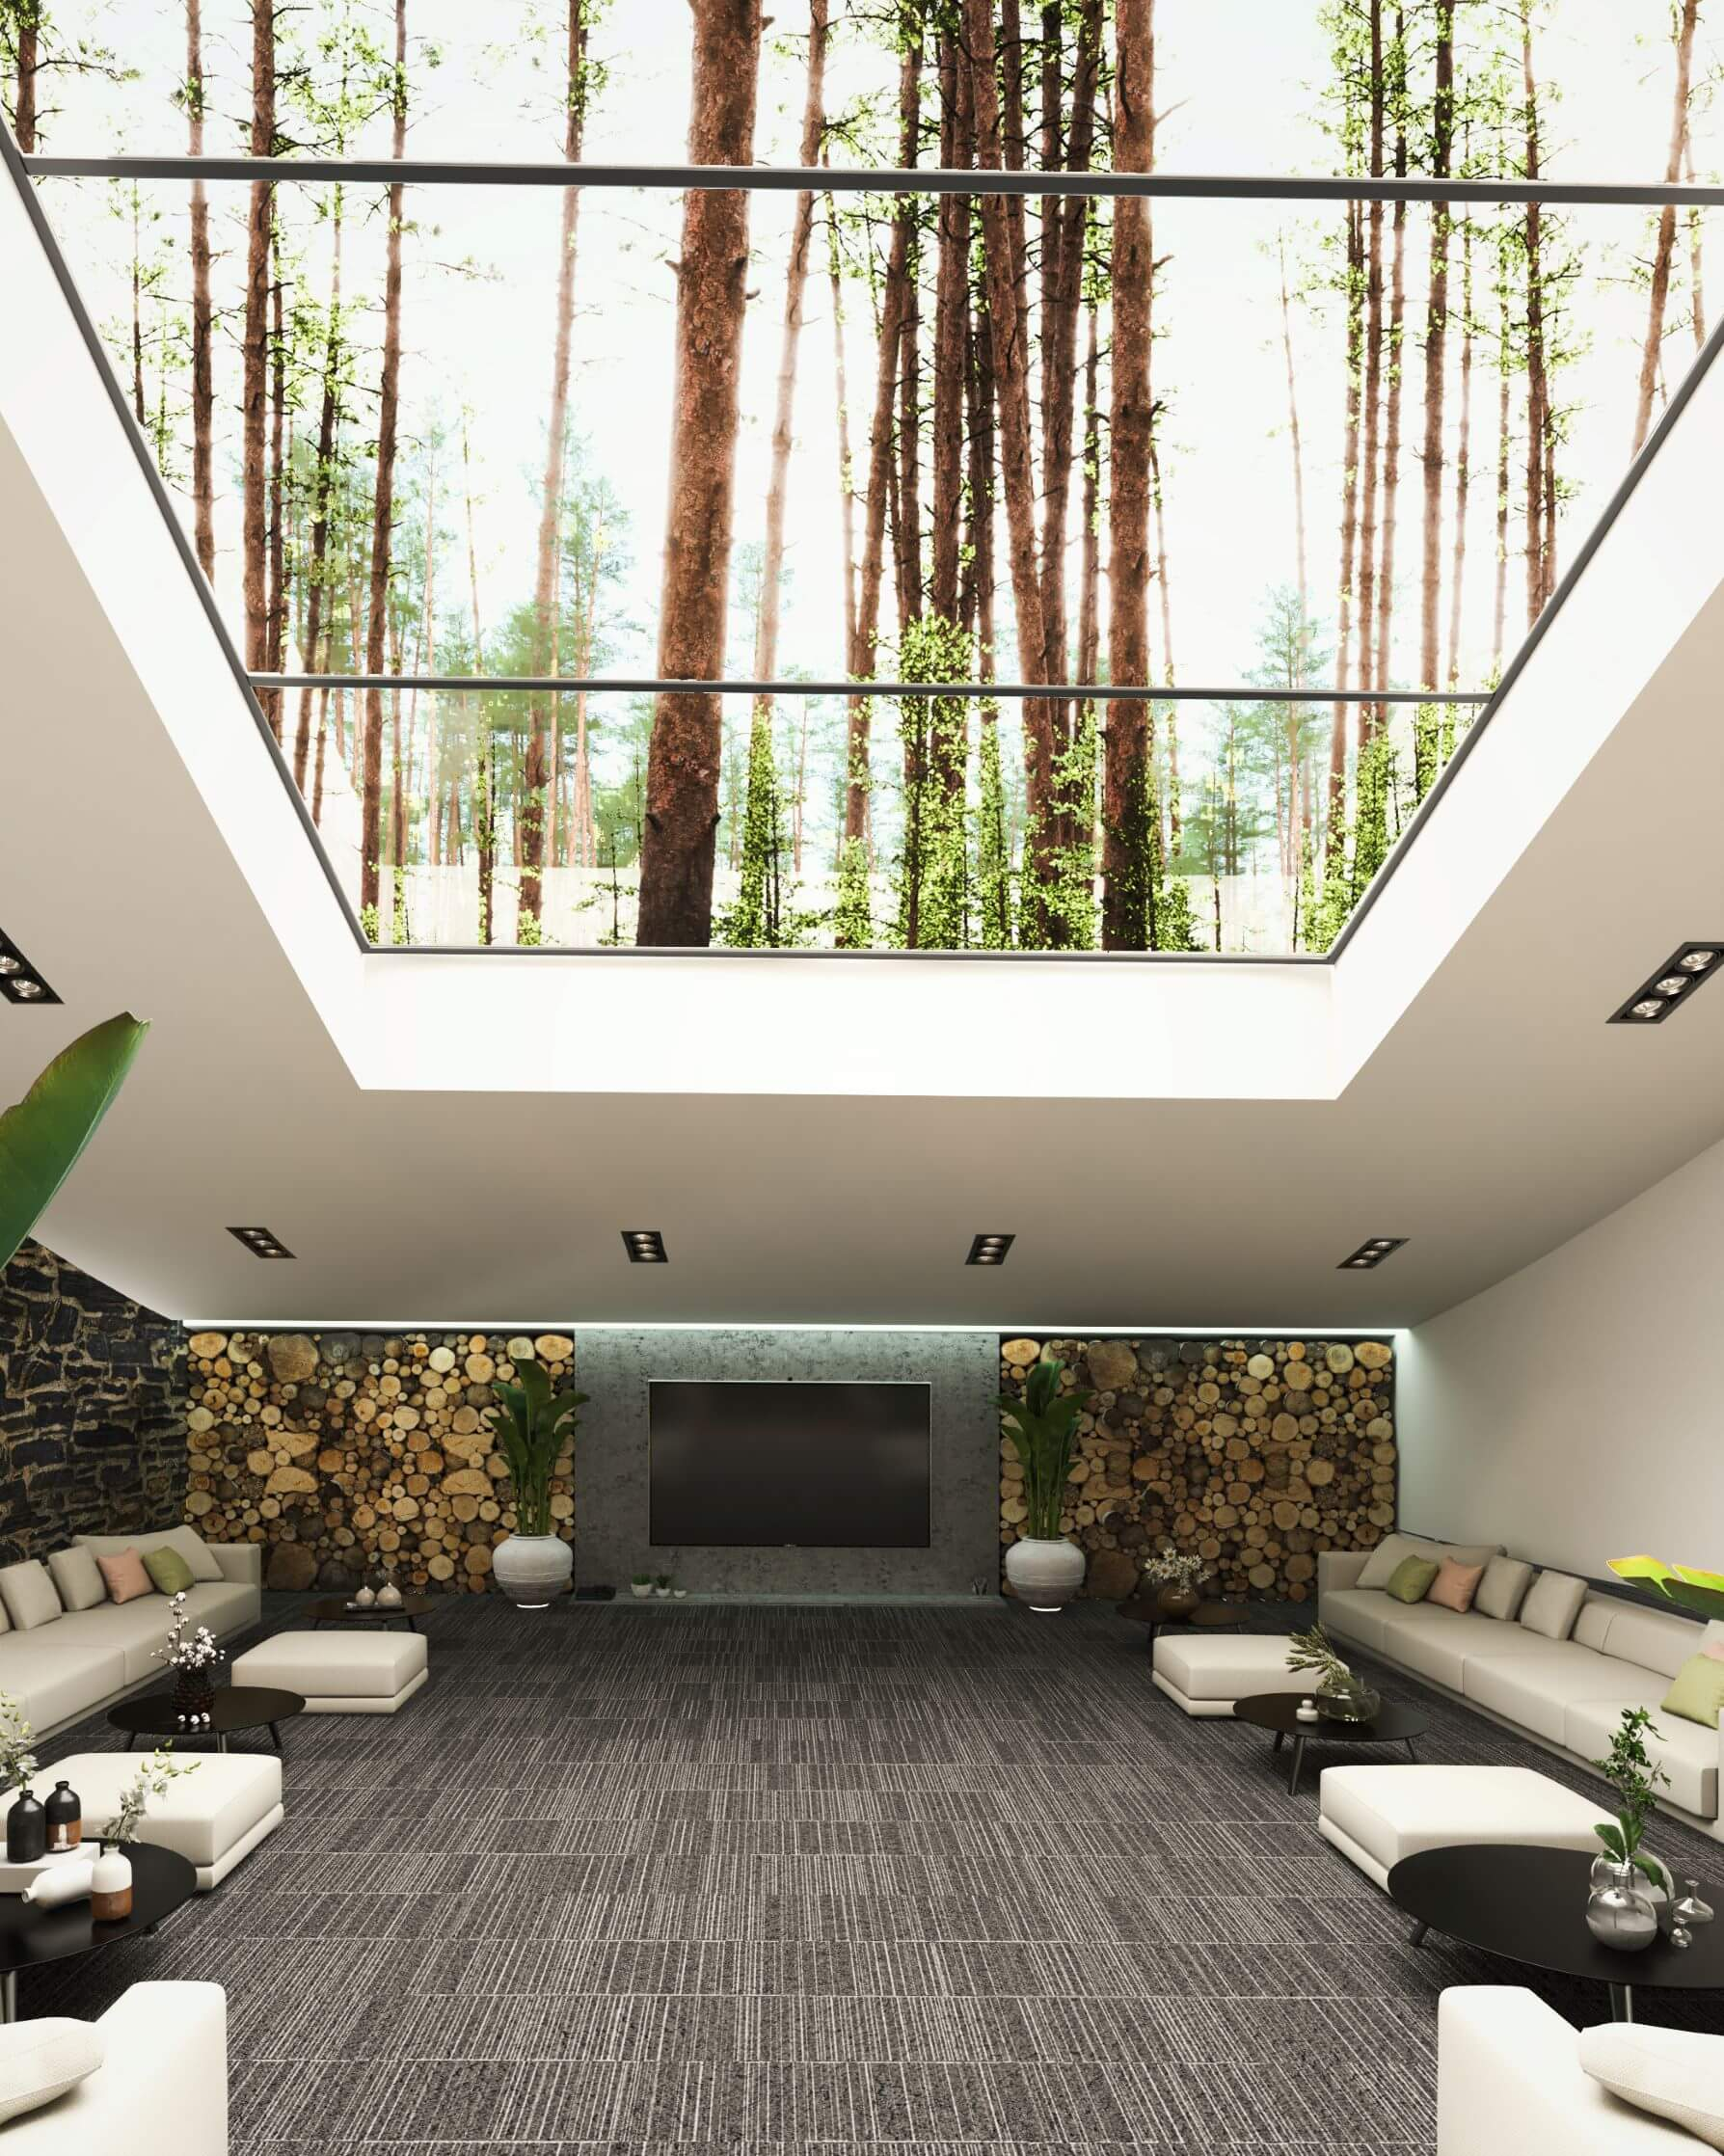 'Landscape House'/Foto:The Space, villa 'ecofriendly':Foto- iOhouse